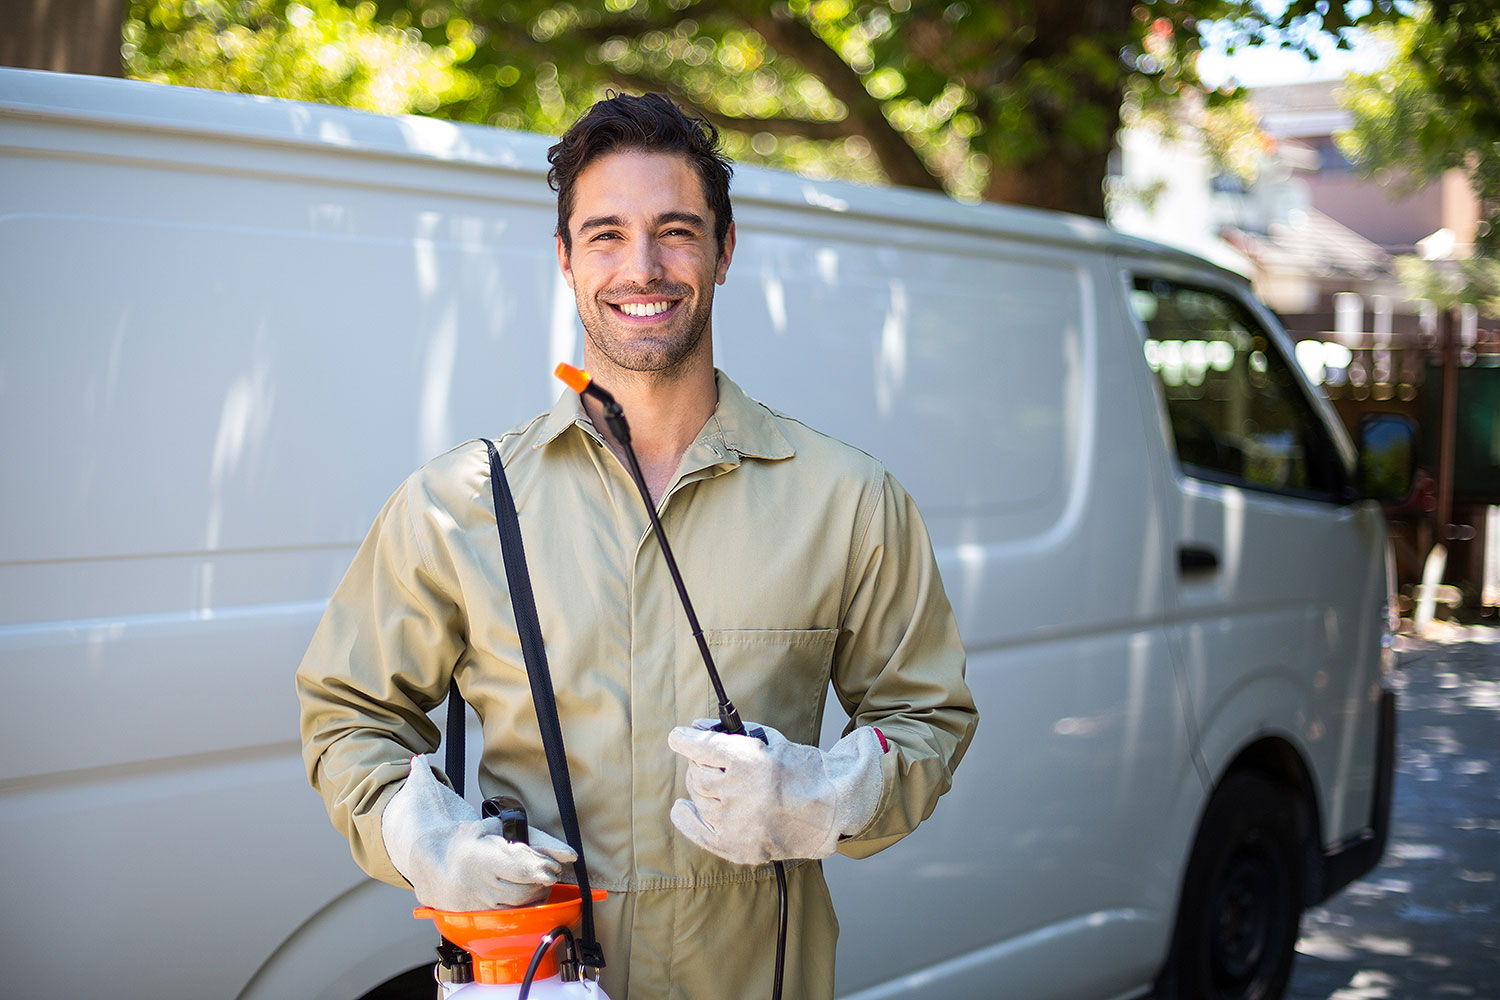 Total Pest Control Connecticut | Experienced Employees